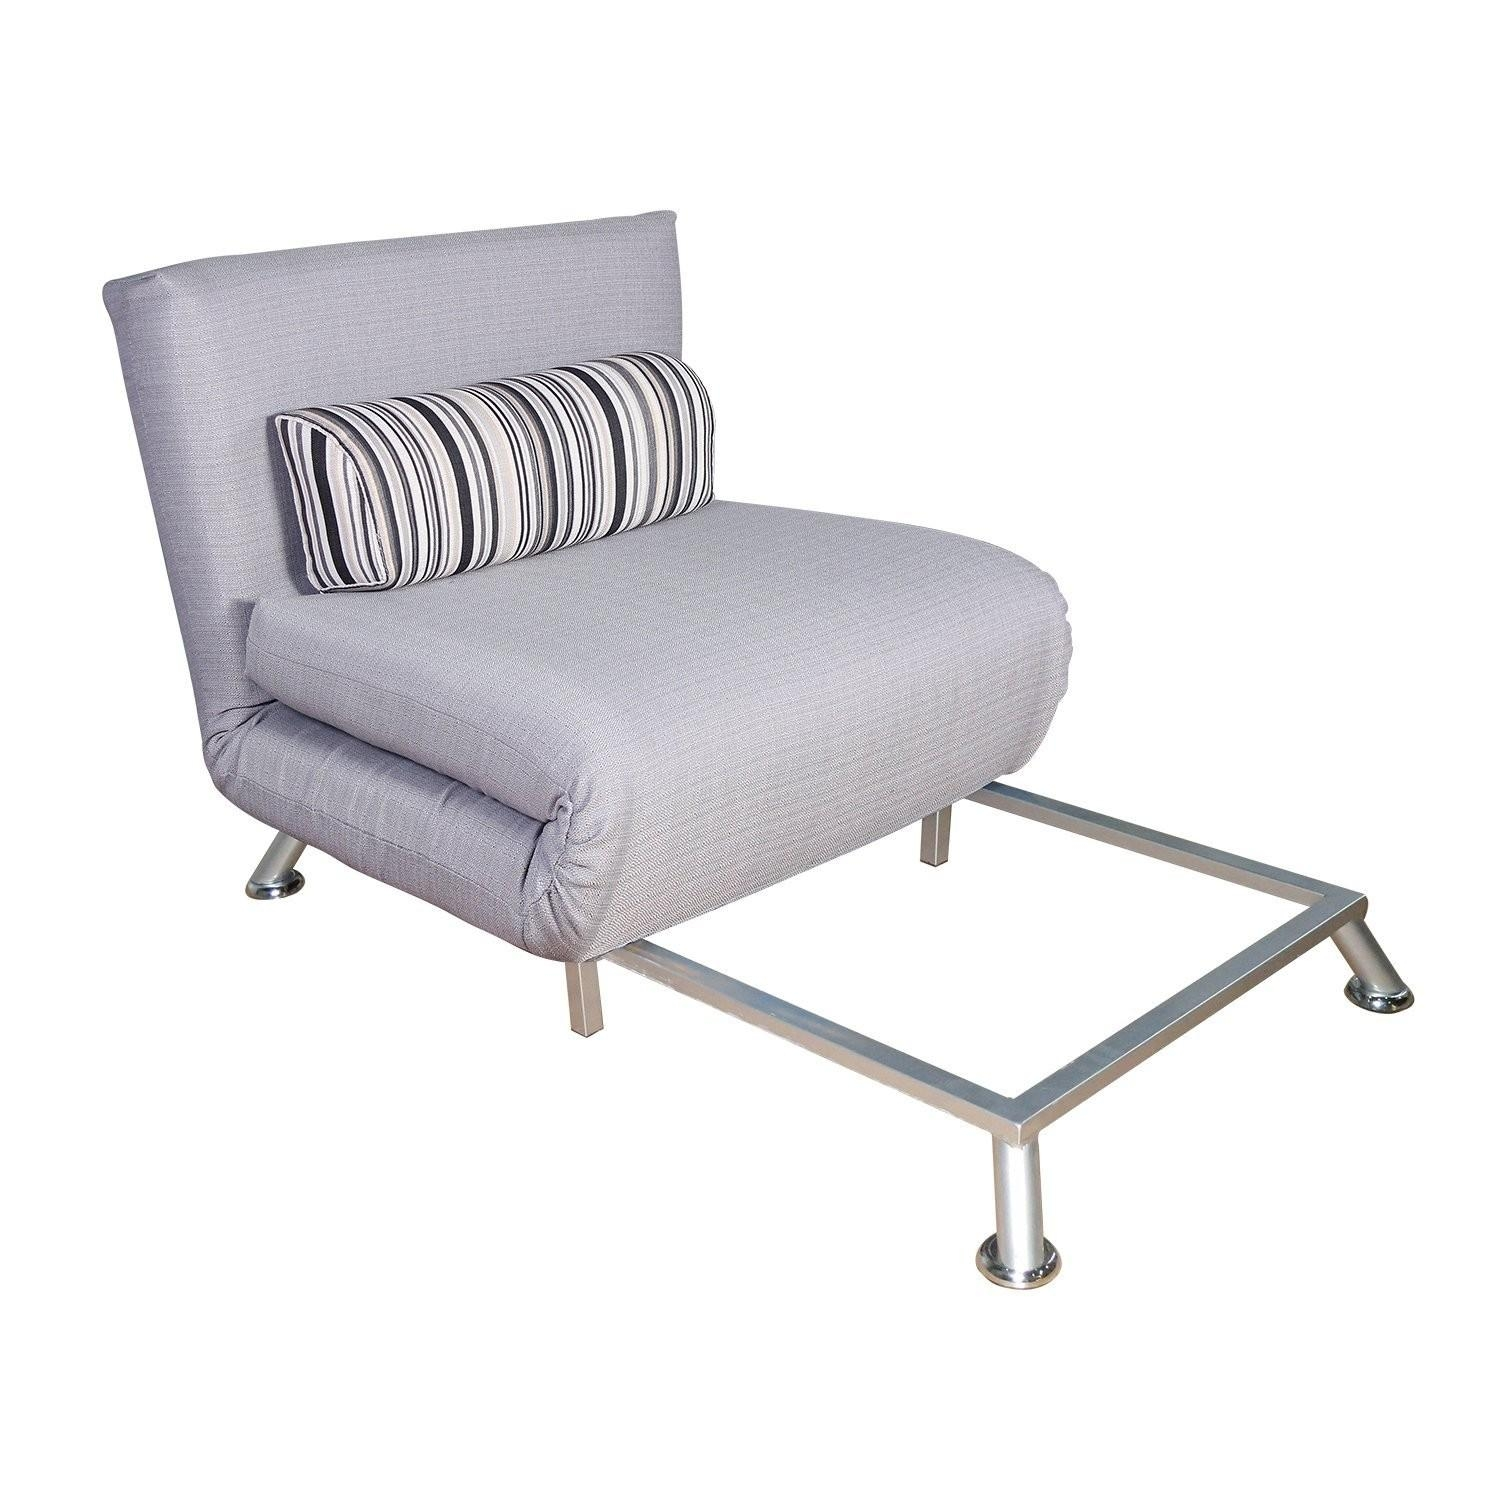 wheelchair bed antique birthing chair for sale 20 43 choices of single sofa chairs ideas